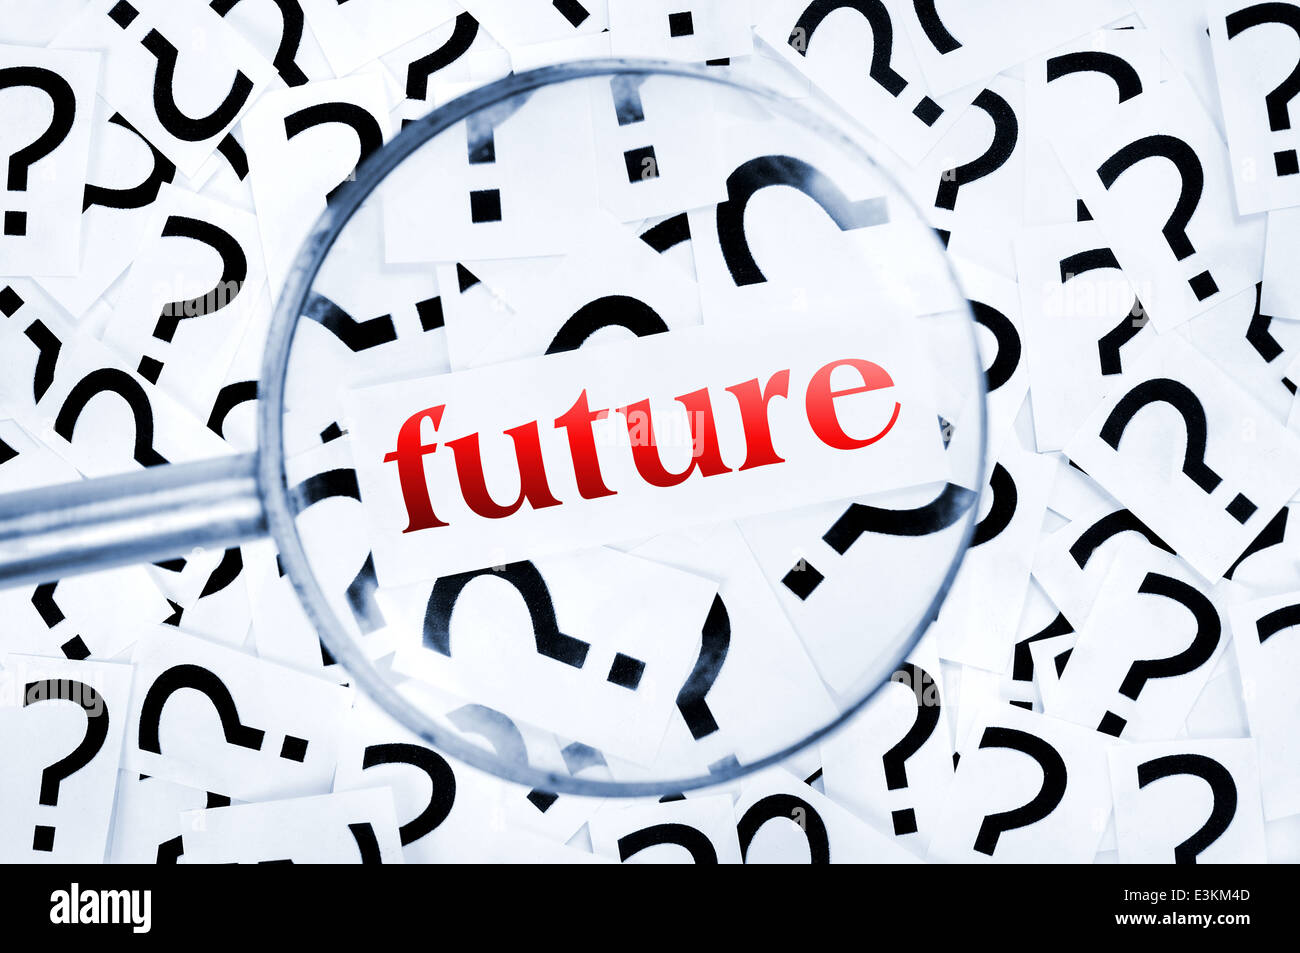 Future word found in many question marks - Stock Image